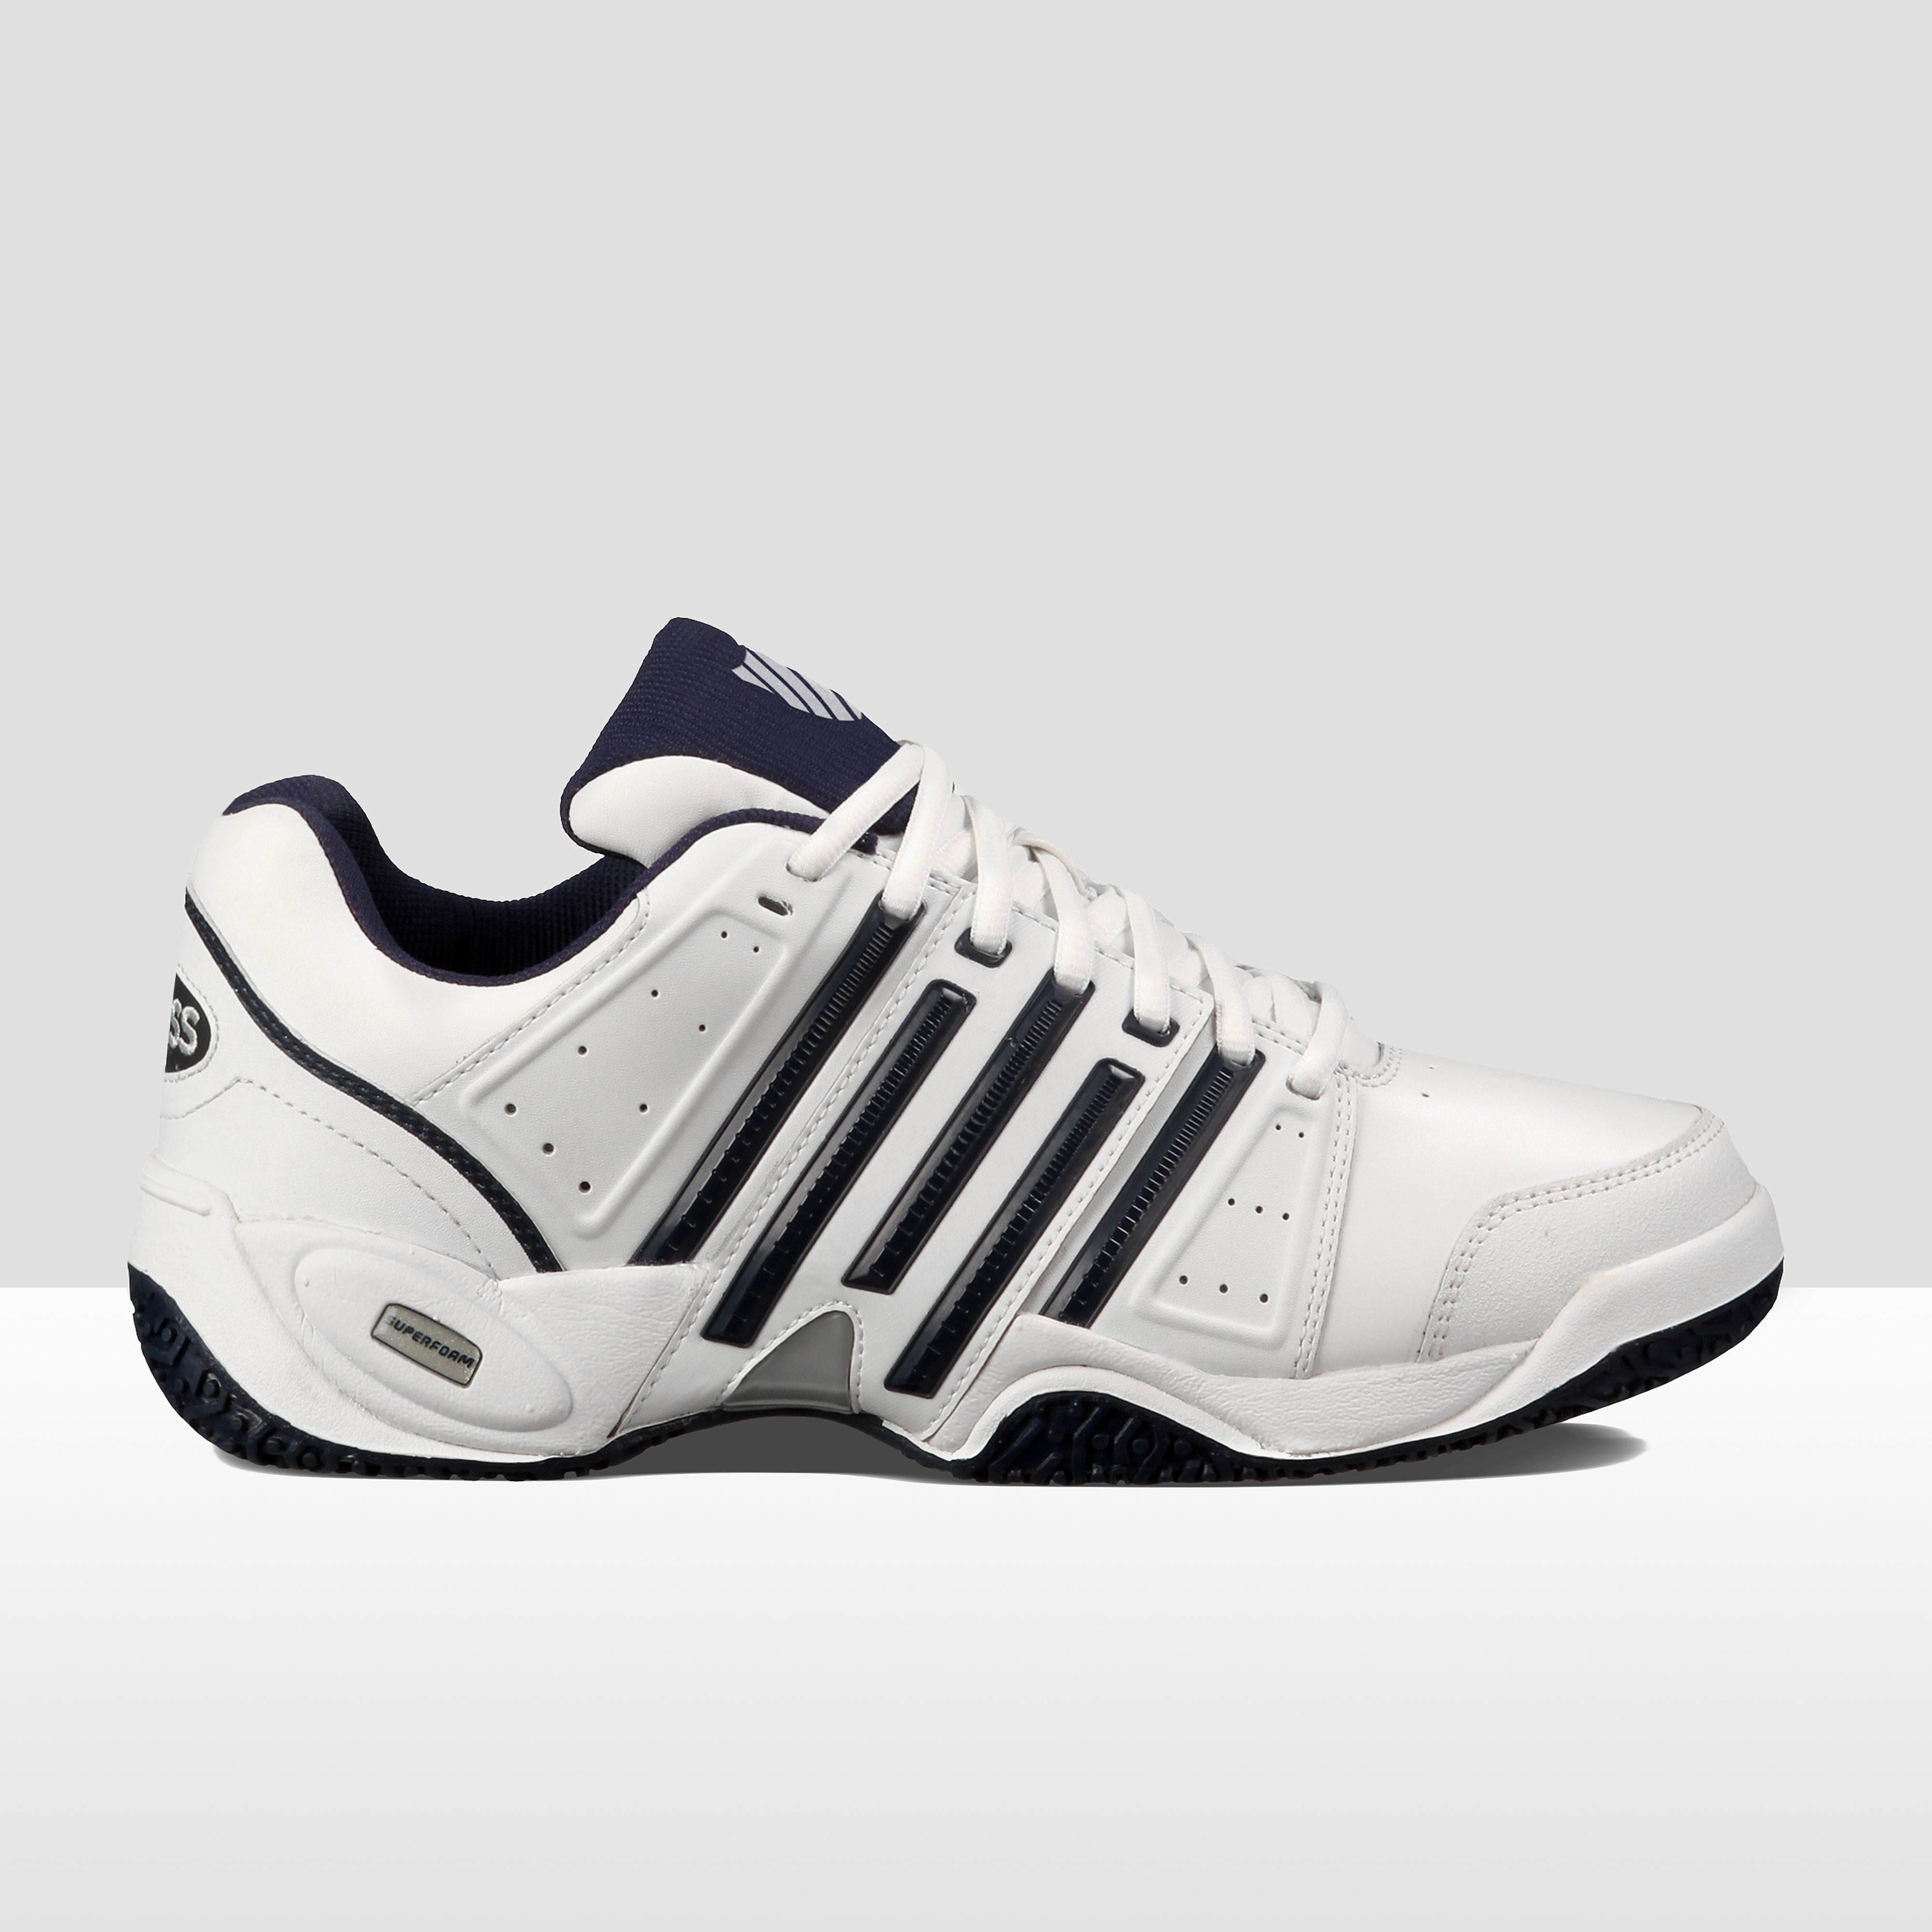 K-SWISS ACCOMPLISH II LTR OMNI TENNISSCHOENEN WIT/BLAUW HEREN